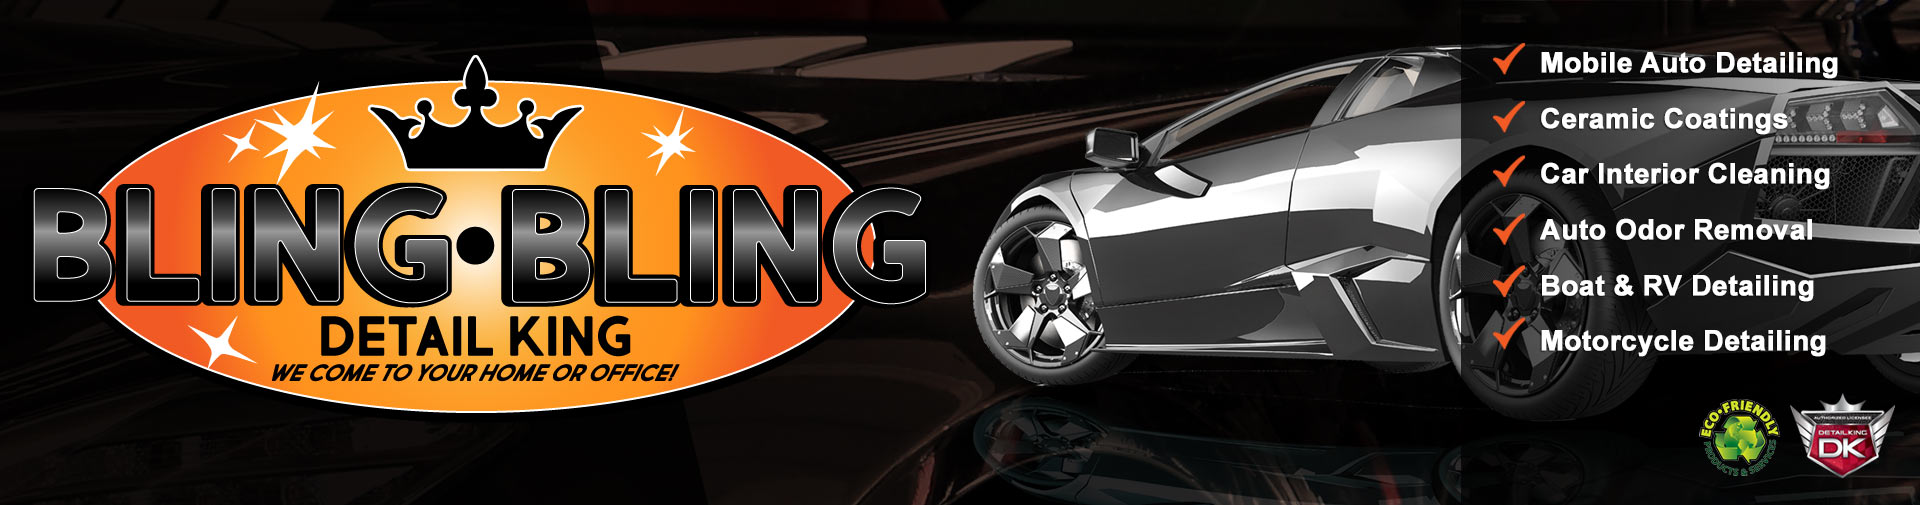 Mobile auto detailing Orange County California